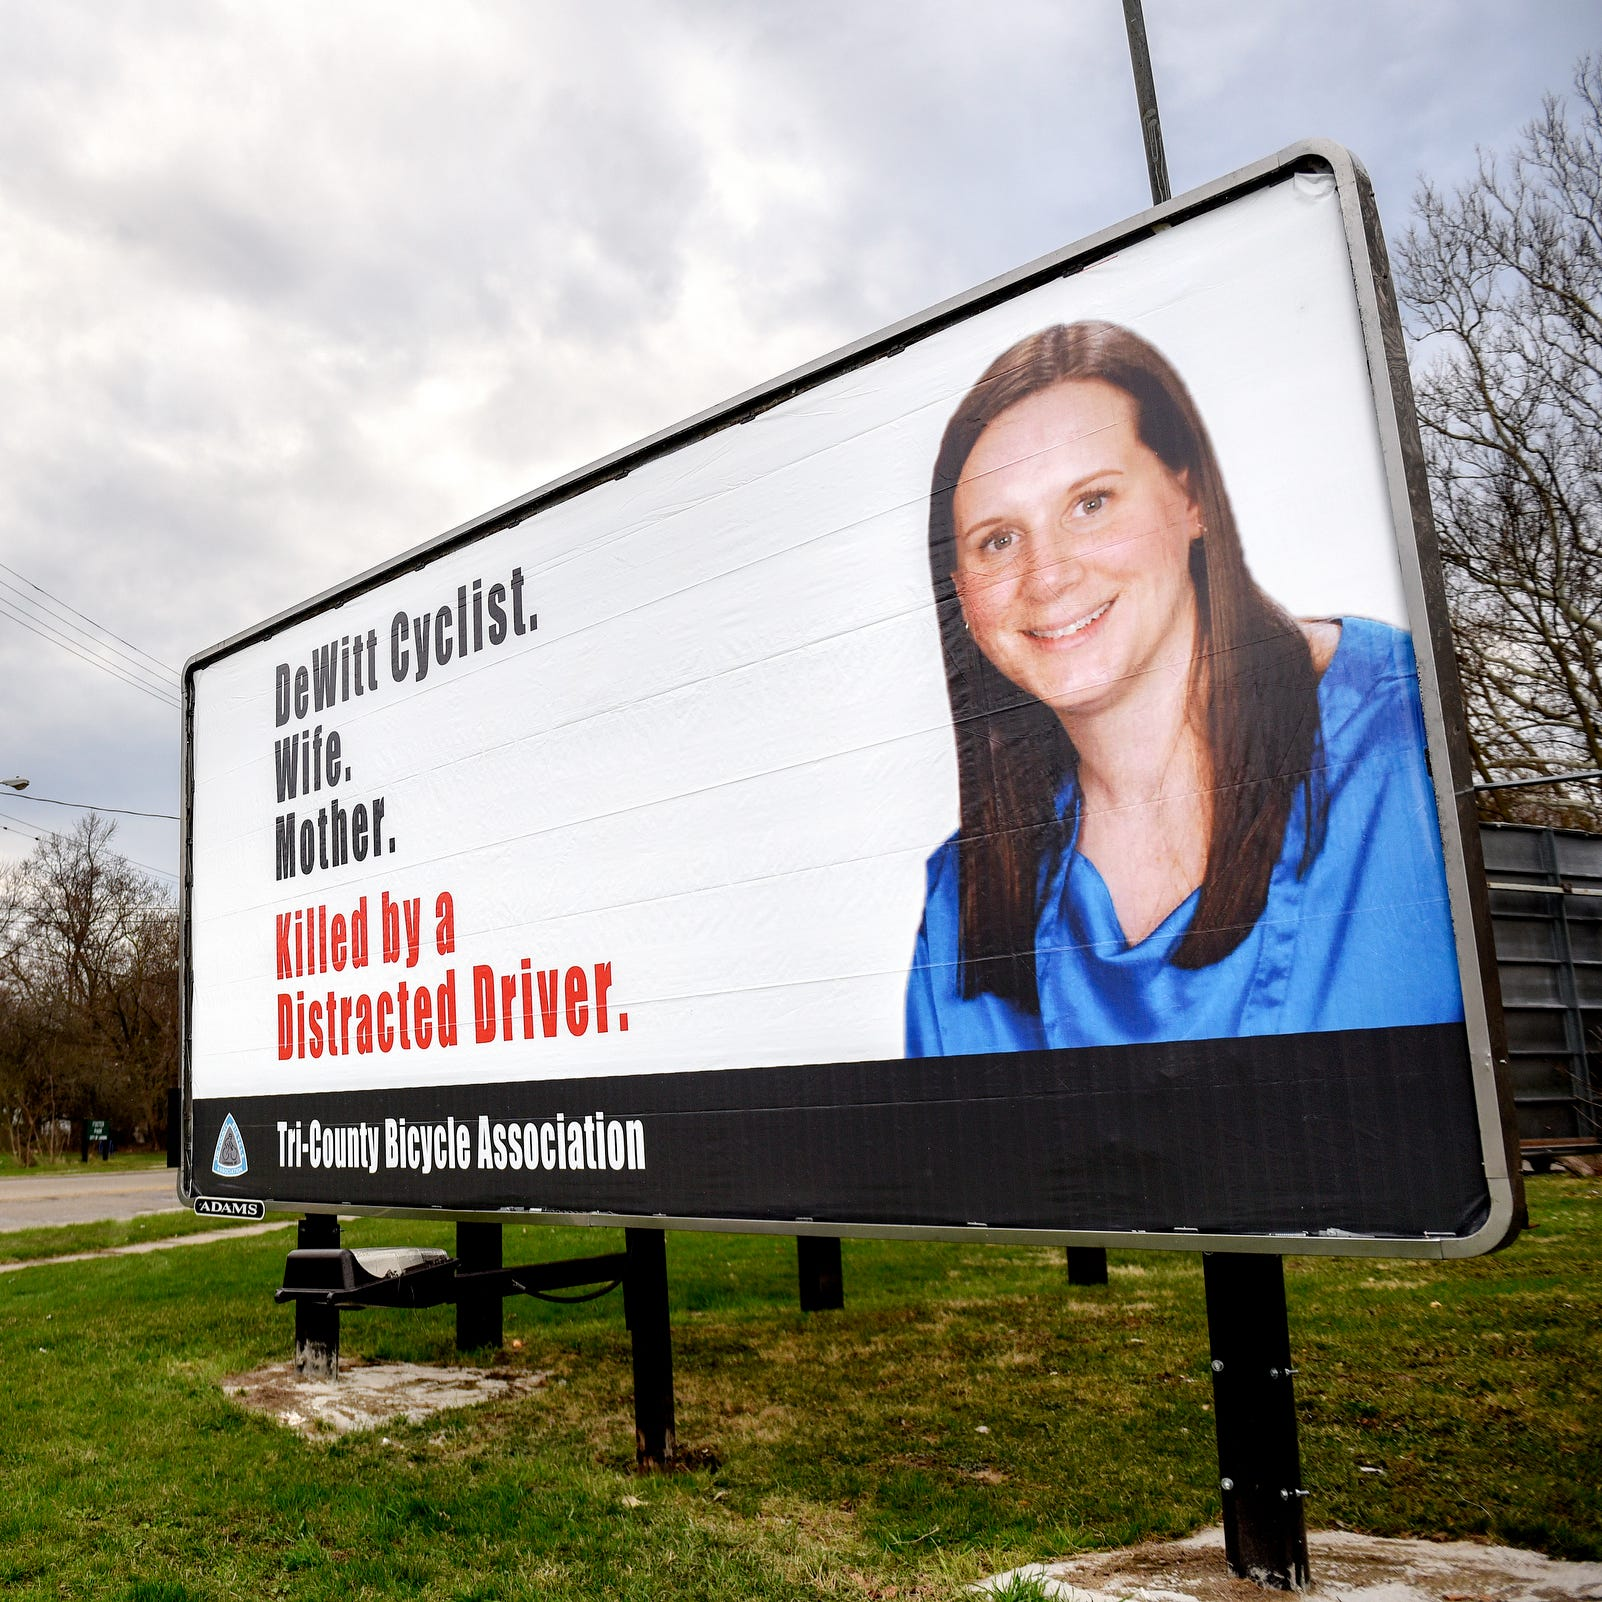 DeWitt cyclist Jill Byelich died because of a distracted driver. Her image reminds us to pay attention.